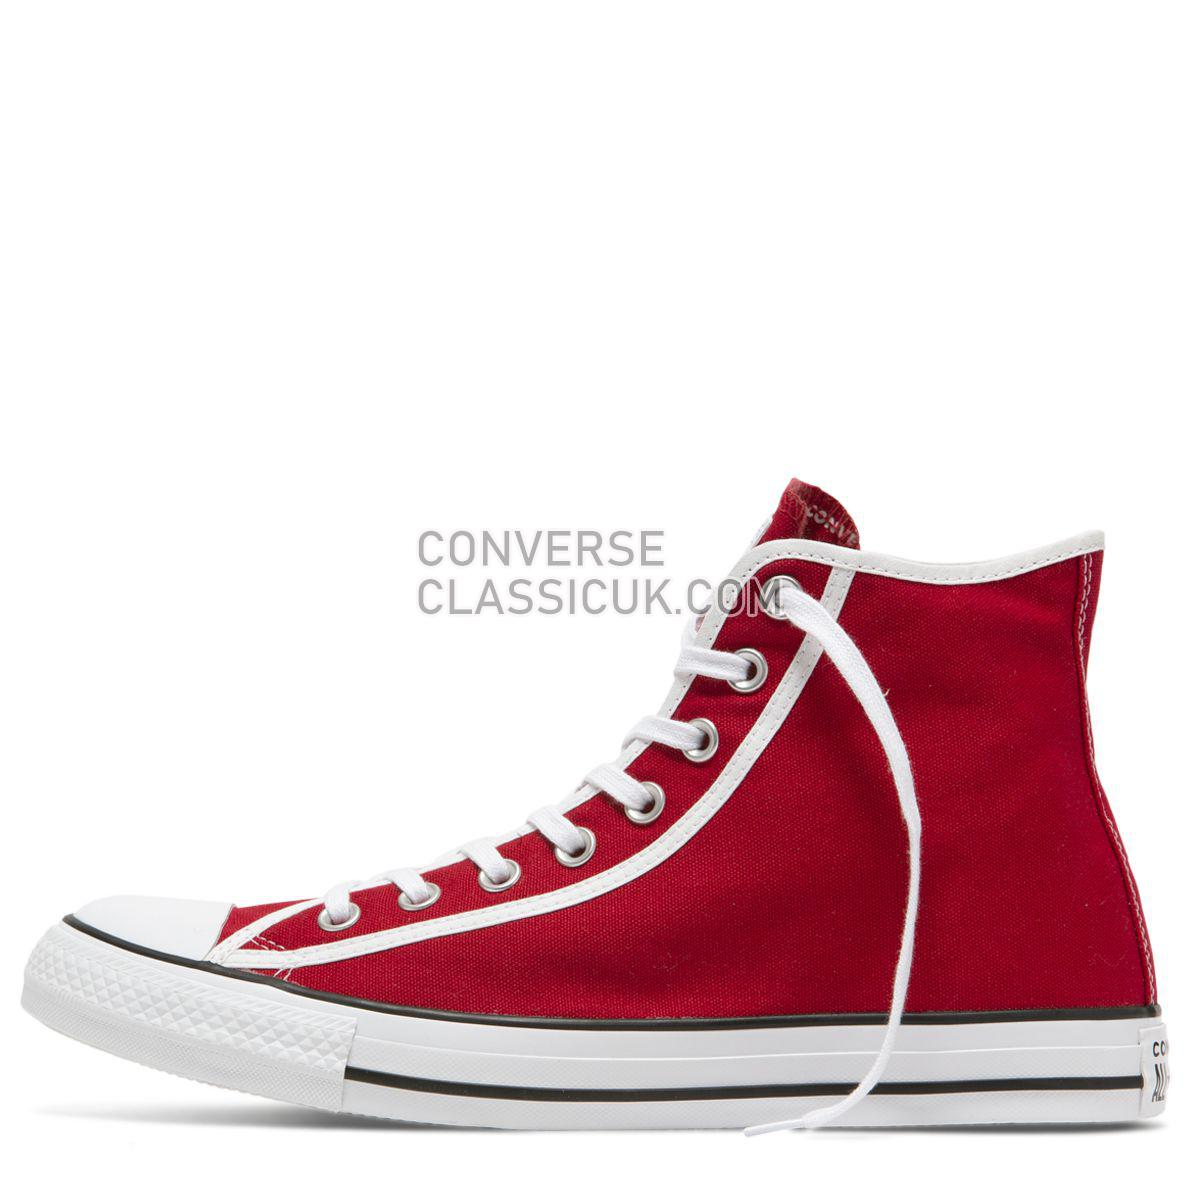 Converse Chuck Taylor All Star Gamer High Top Gym Red Mens Womens Unisex 163980 Gym Red/White/Black Shoes